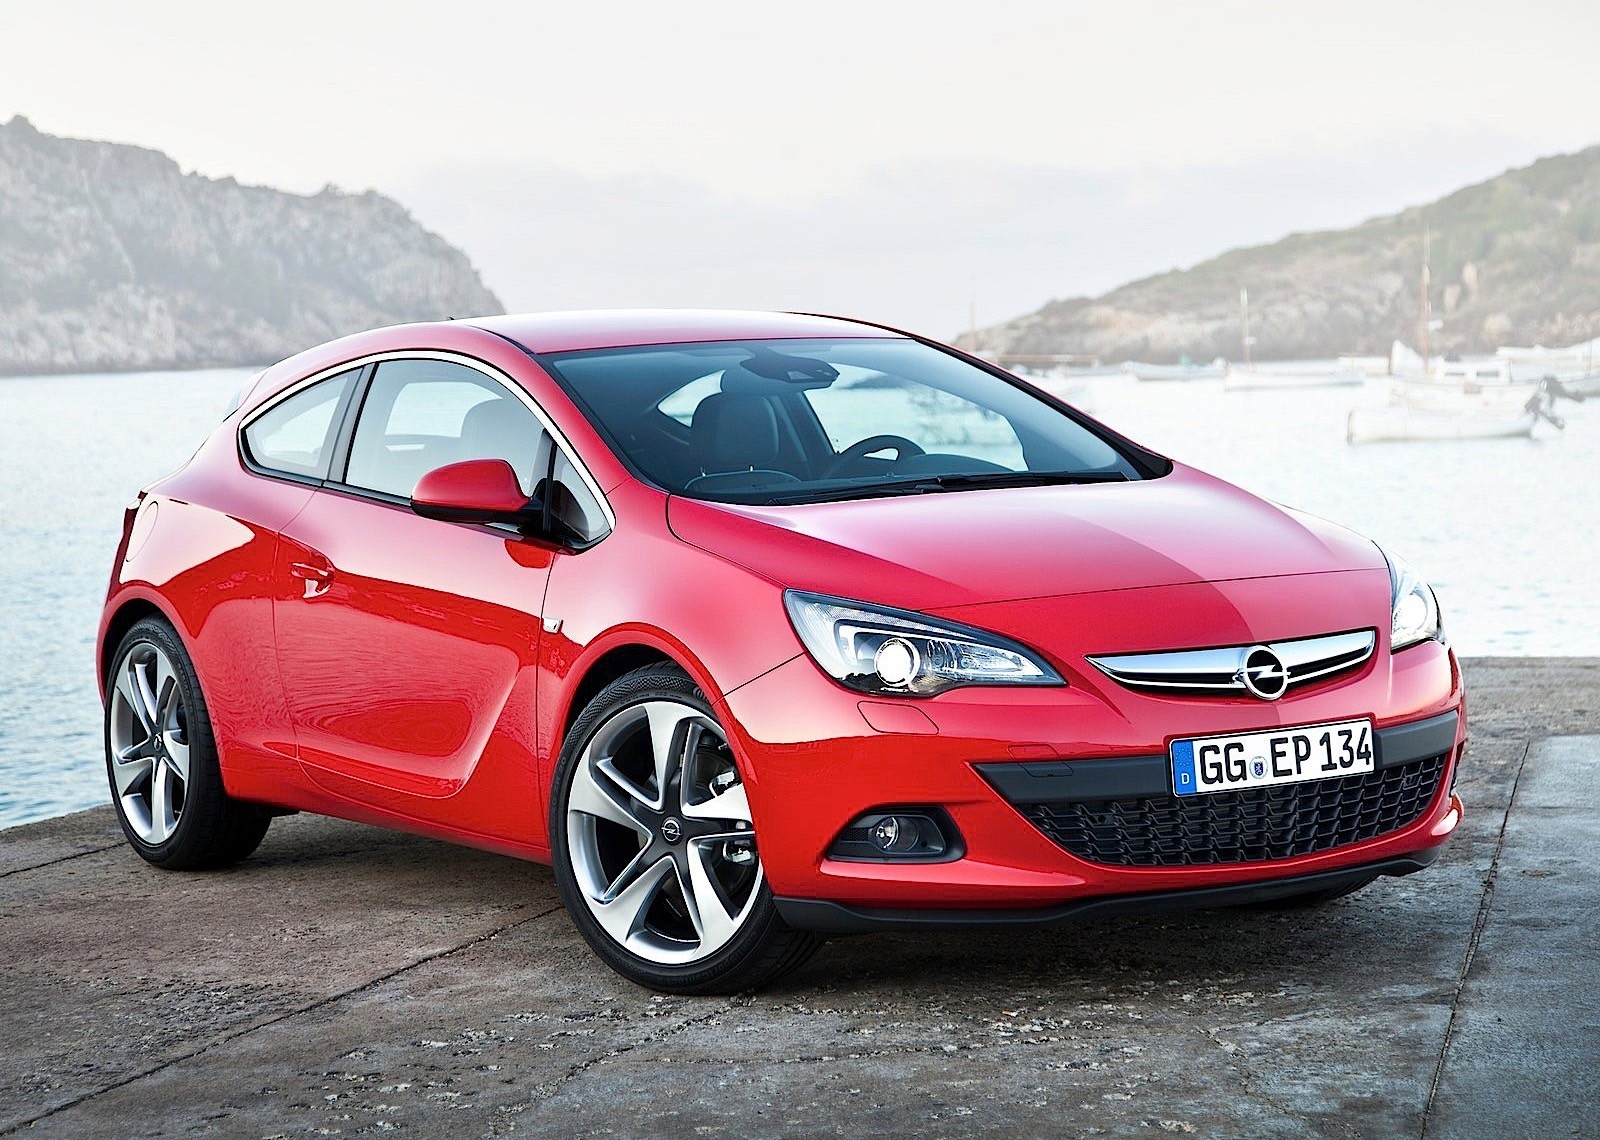 opel astra gtc specs 2011 2012 2013 2014 2015 2016 2017 autoevolution. Black Bedroom Furniture Sets. Home Design Ideas